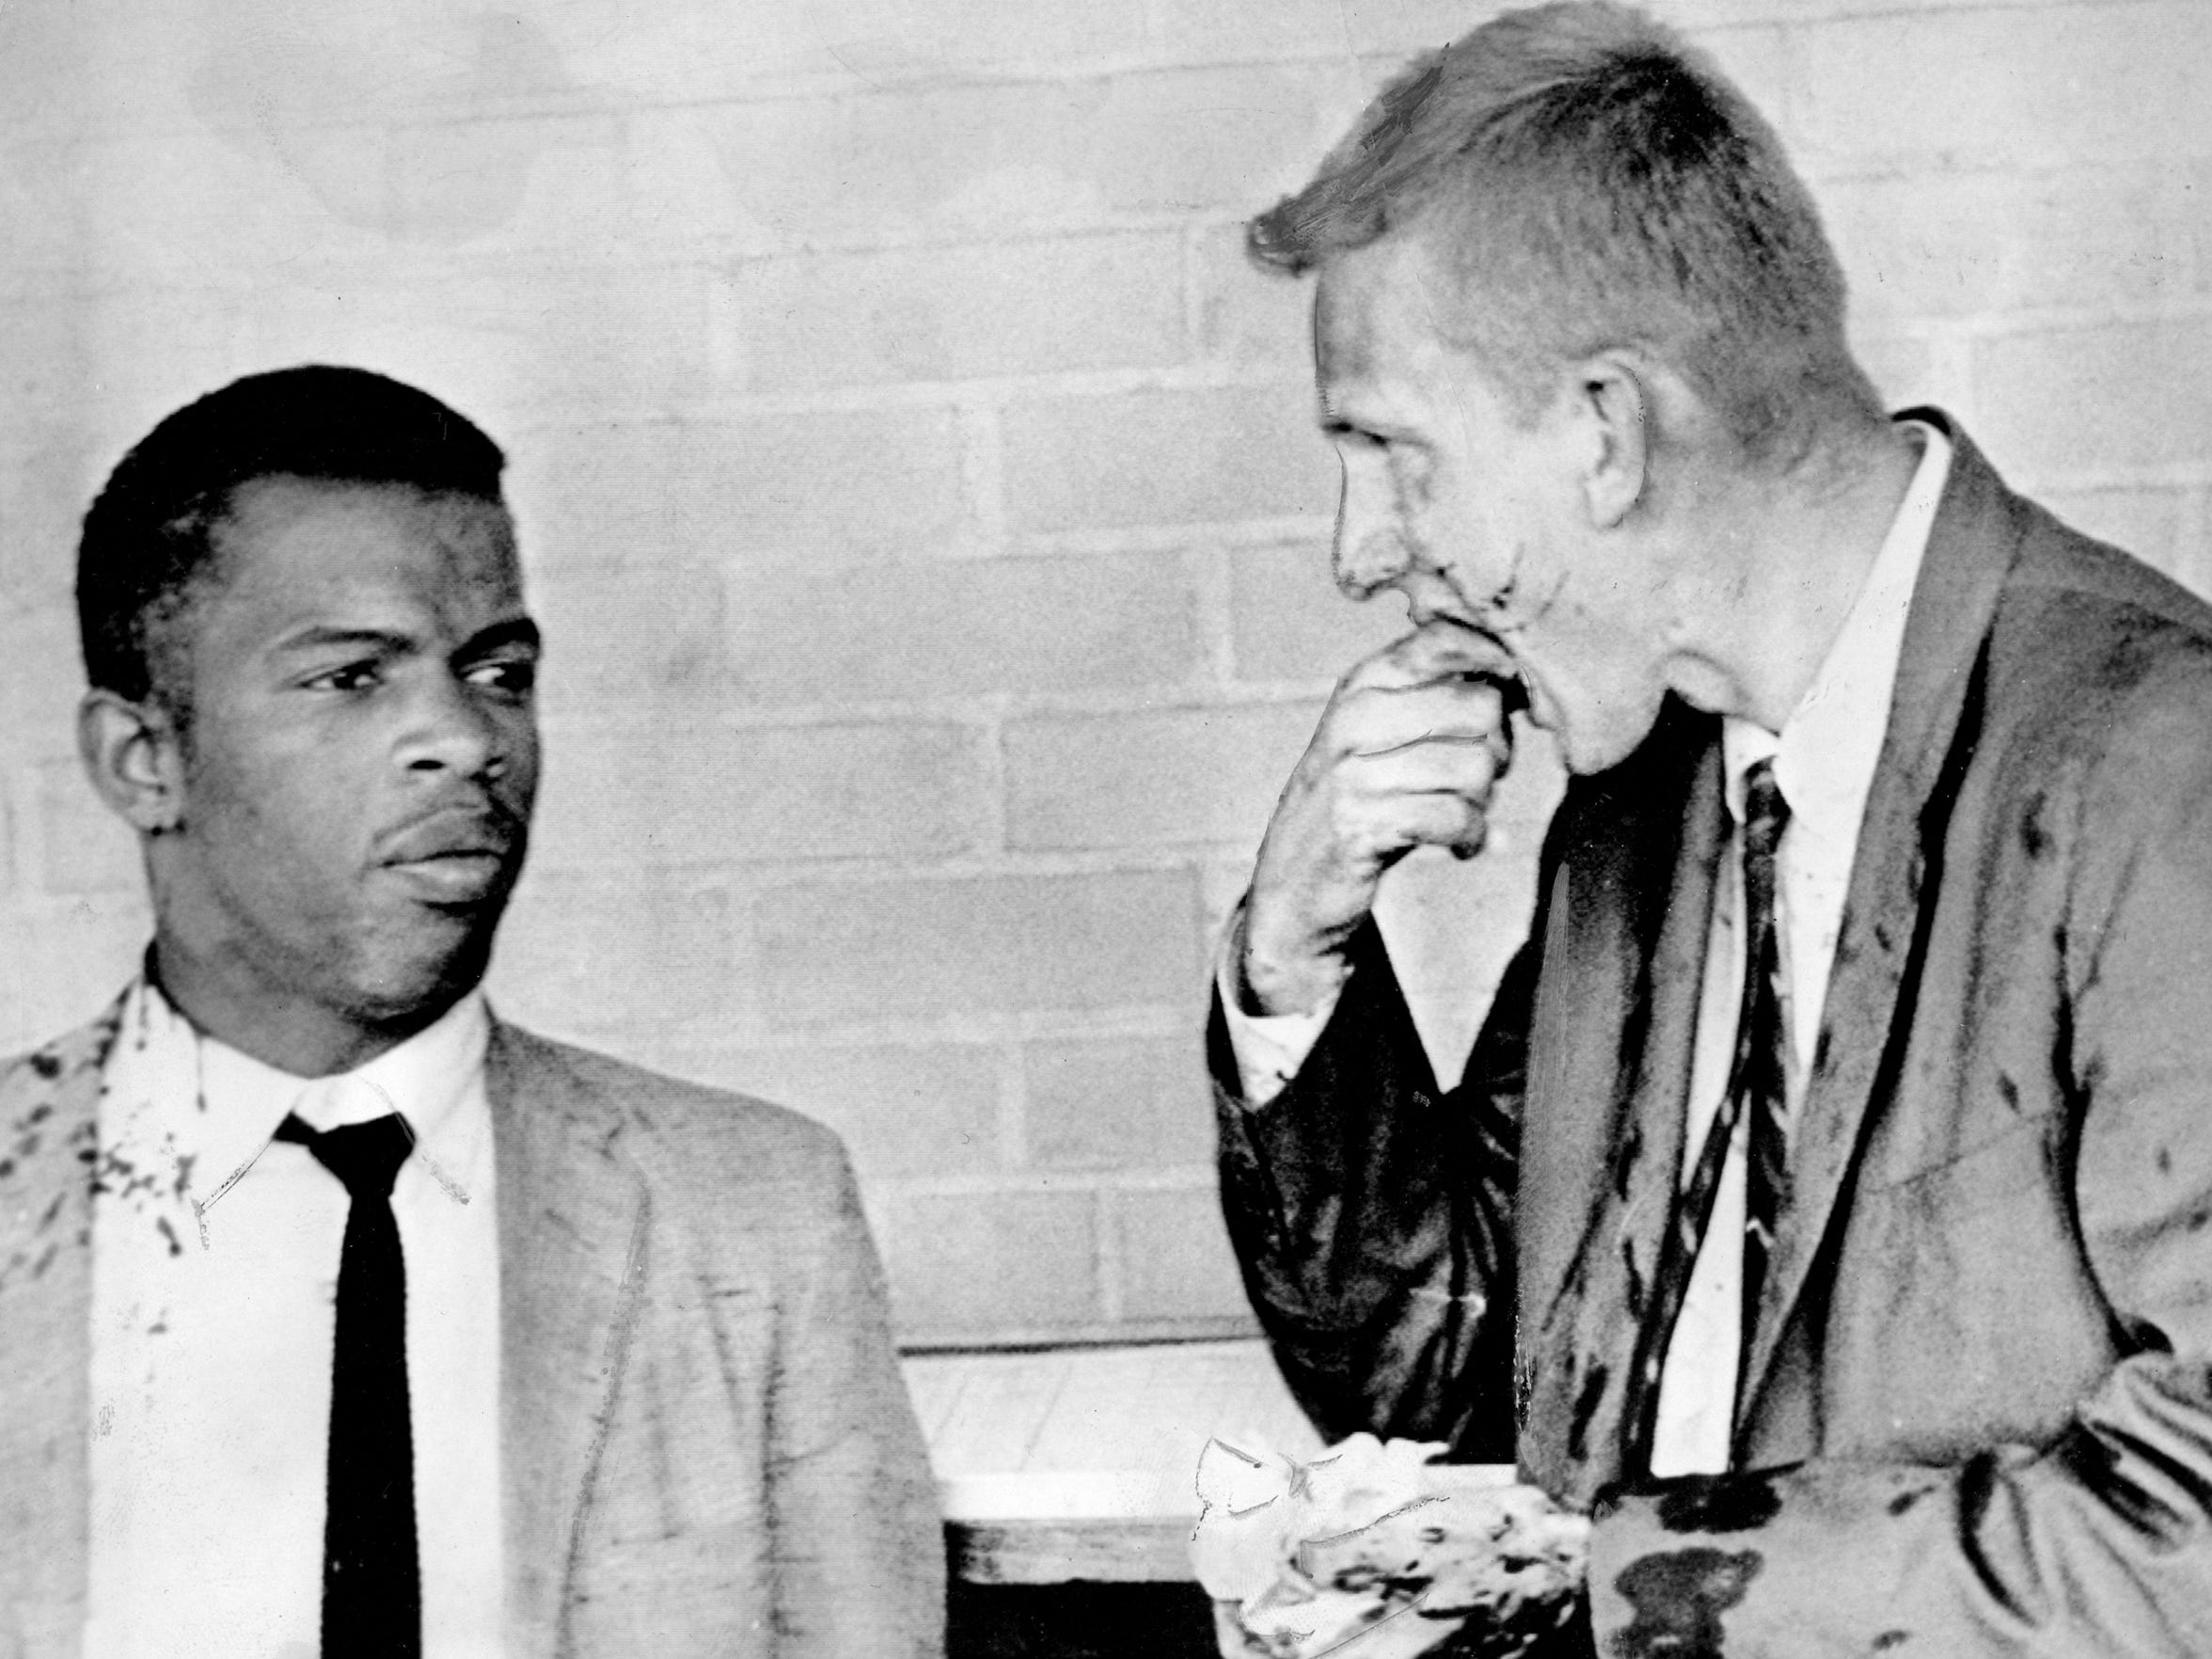 Freedom Riders John Lewis, left, now a Georgia congressman, and Jim Zwerg, then a Fisk student, were beaten by a mob in 1961 after they arrived in Montgomery, Ala.